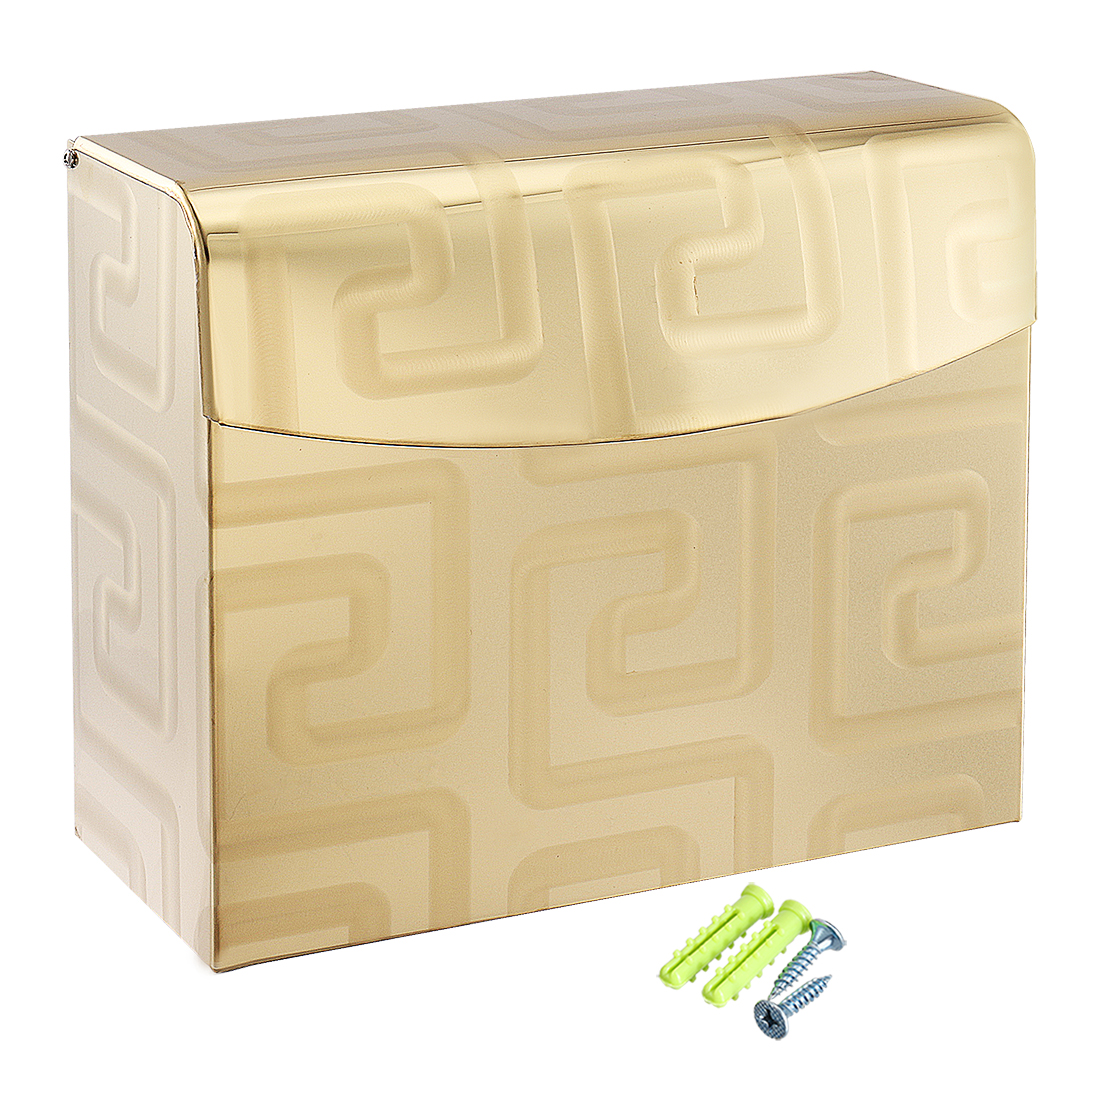 Toilet Paper Holder w Cover Bathroom Accessories Gold Tone, Polished Finish K30